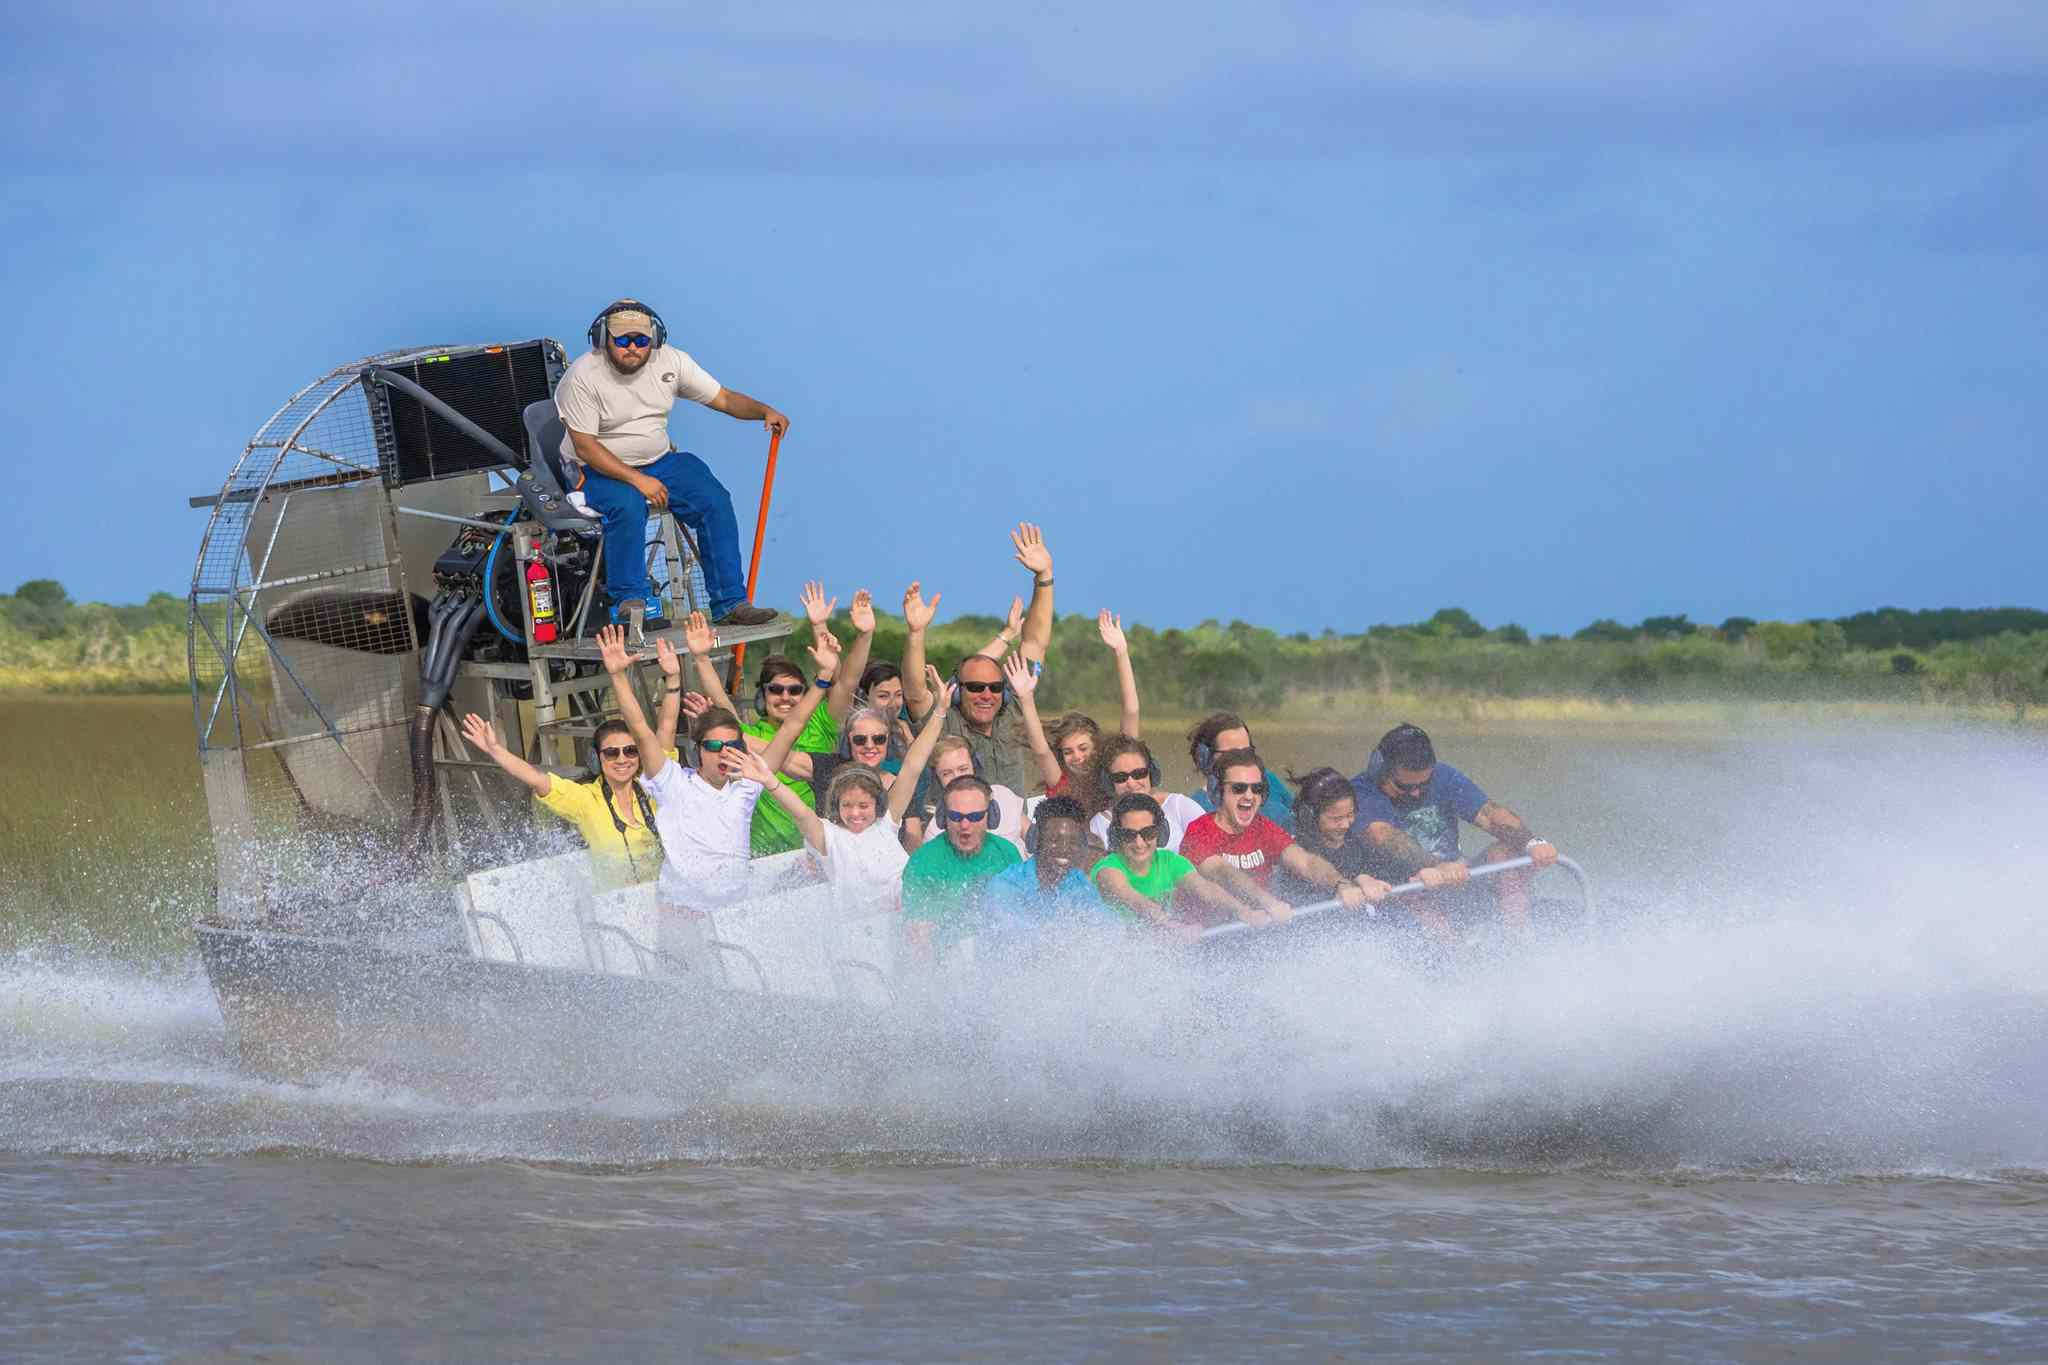 People in a fan boat at Everglades Alligator Farm